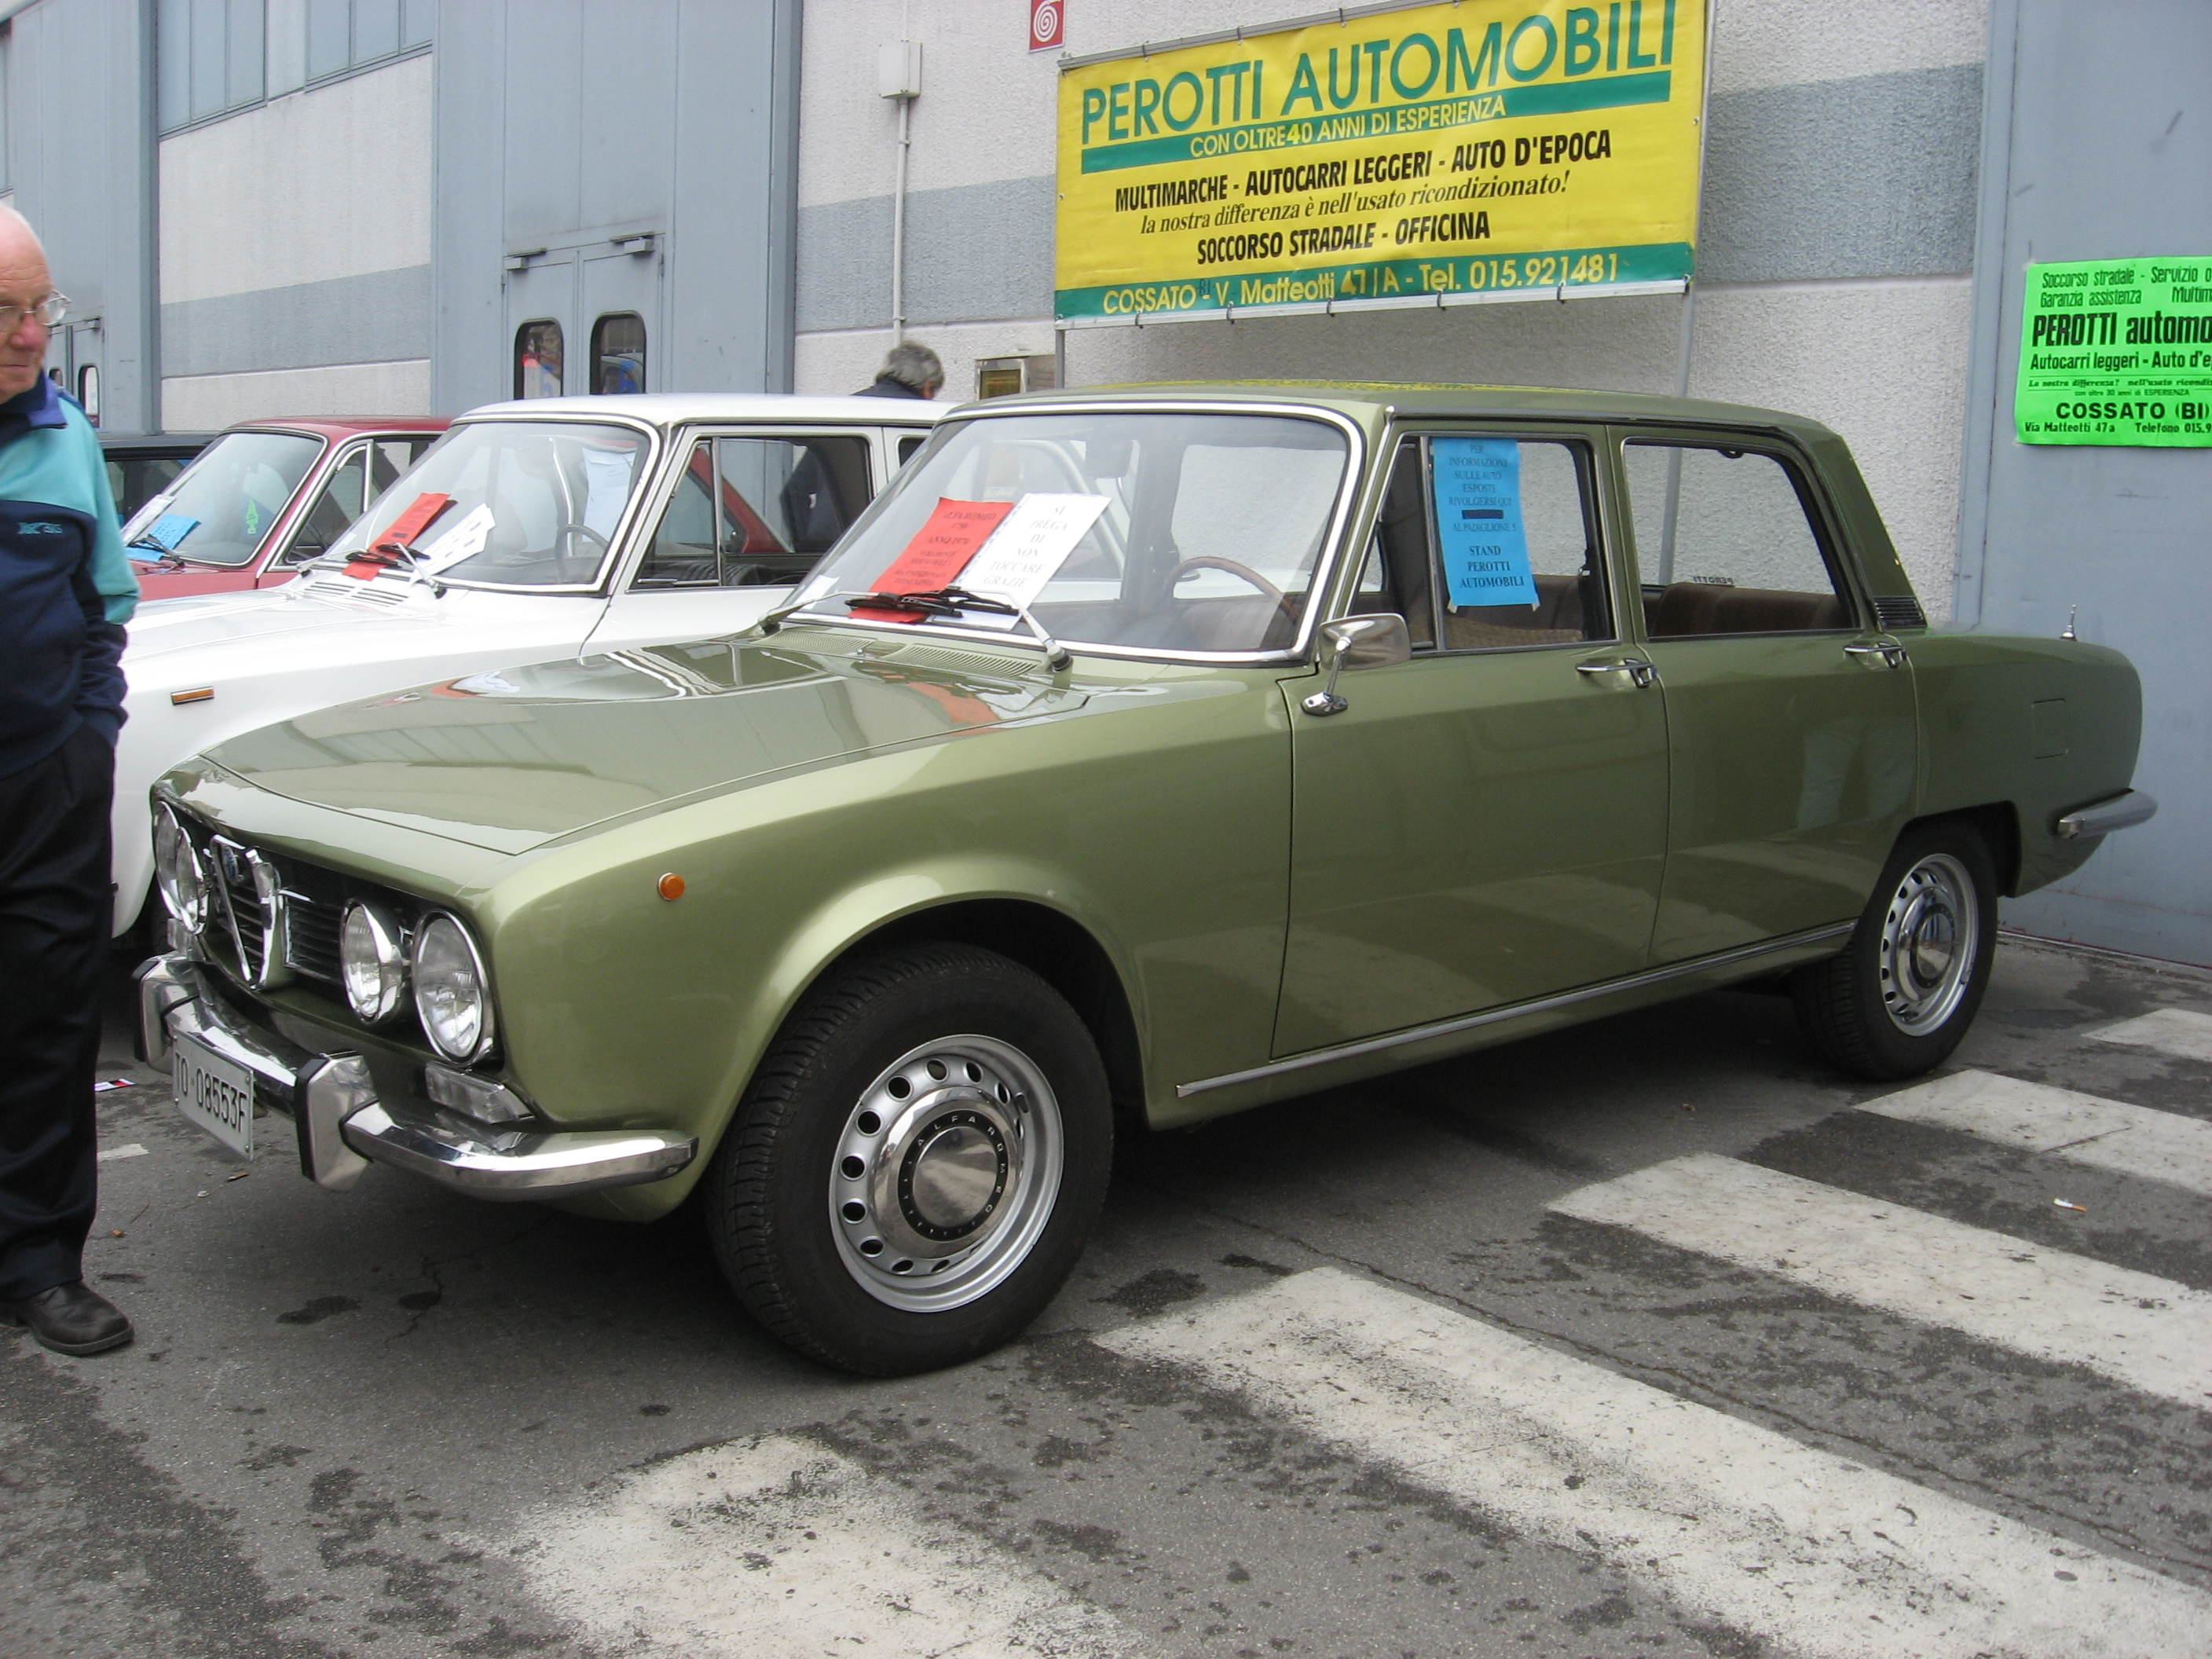 File:Alfa Romeo 1750 berlina Green.JPG - Wikimedia Commons